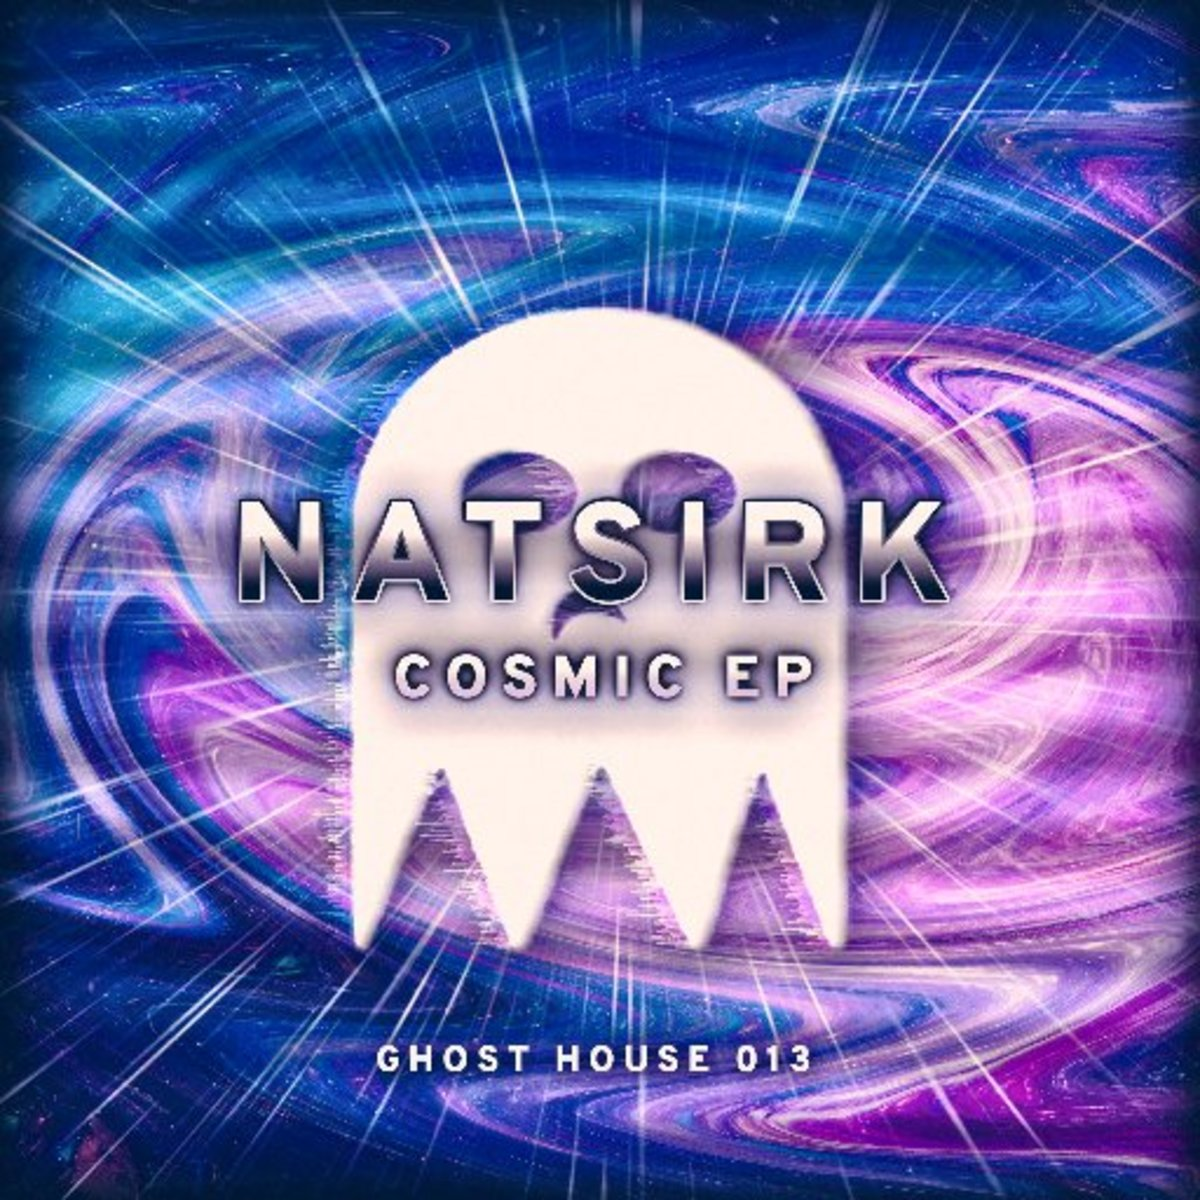 NATSIRK LATEST E.P.